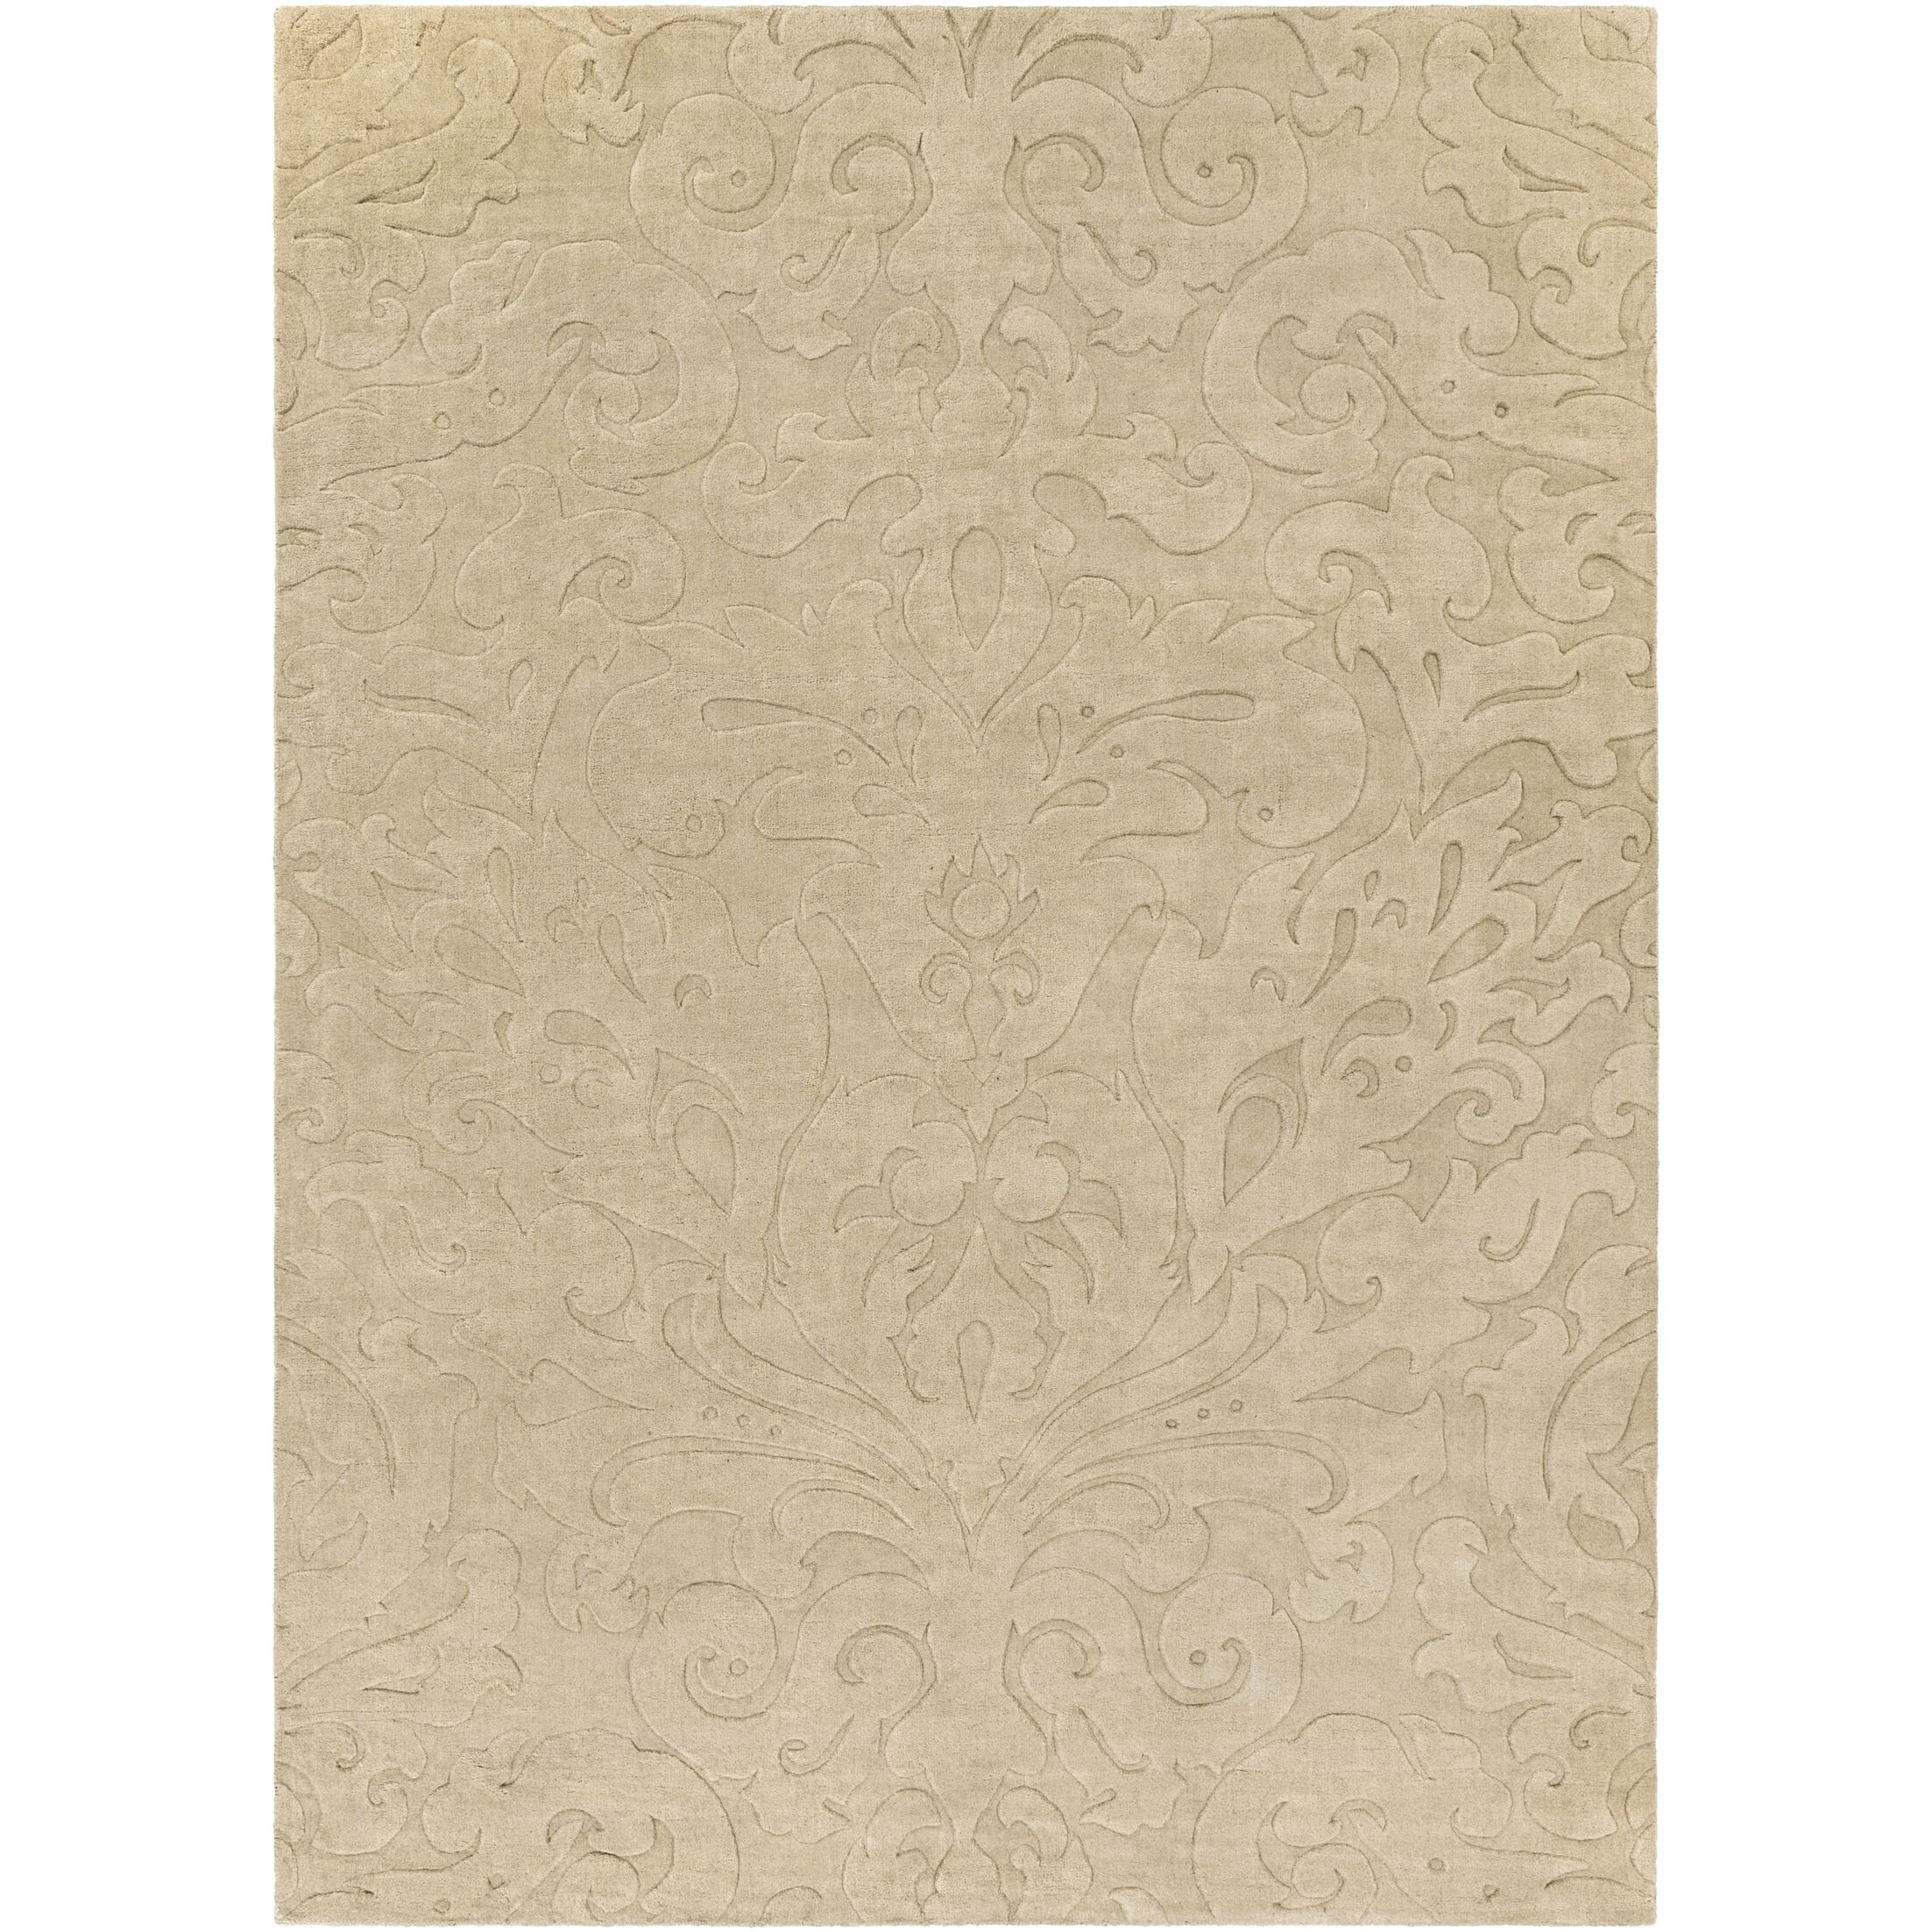 Ella Hand-Woven Natural Area Rug Rug Size: Rectangle 5' x 8'